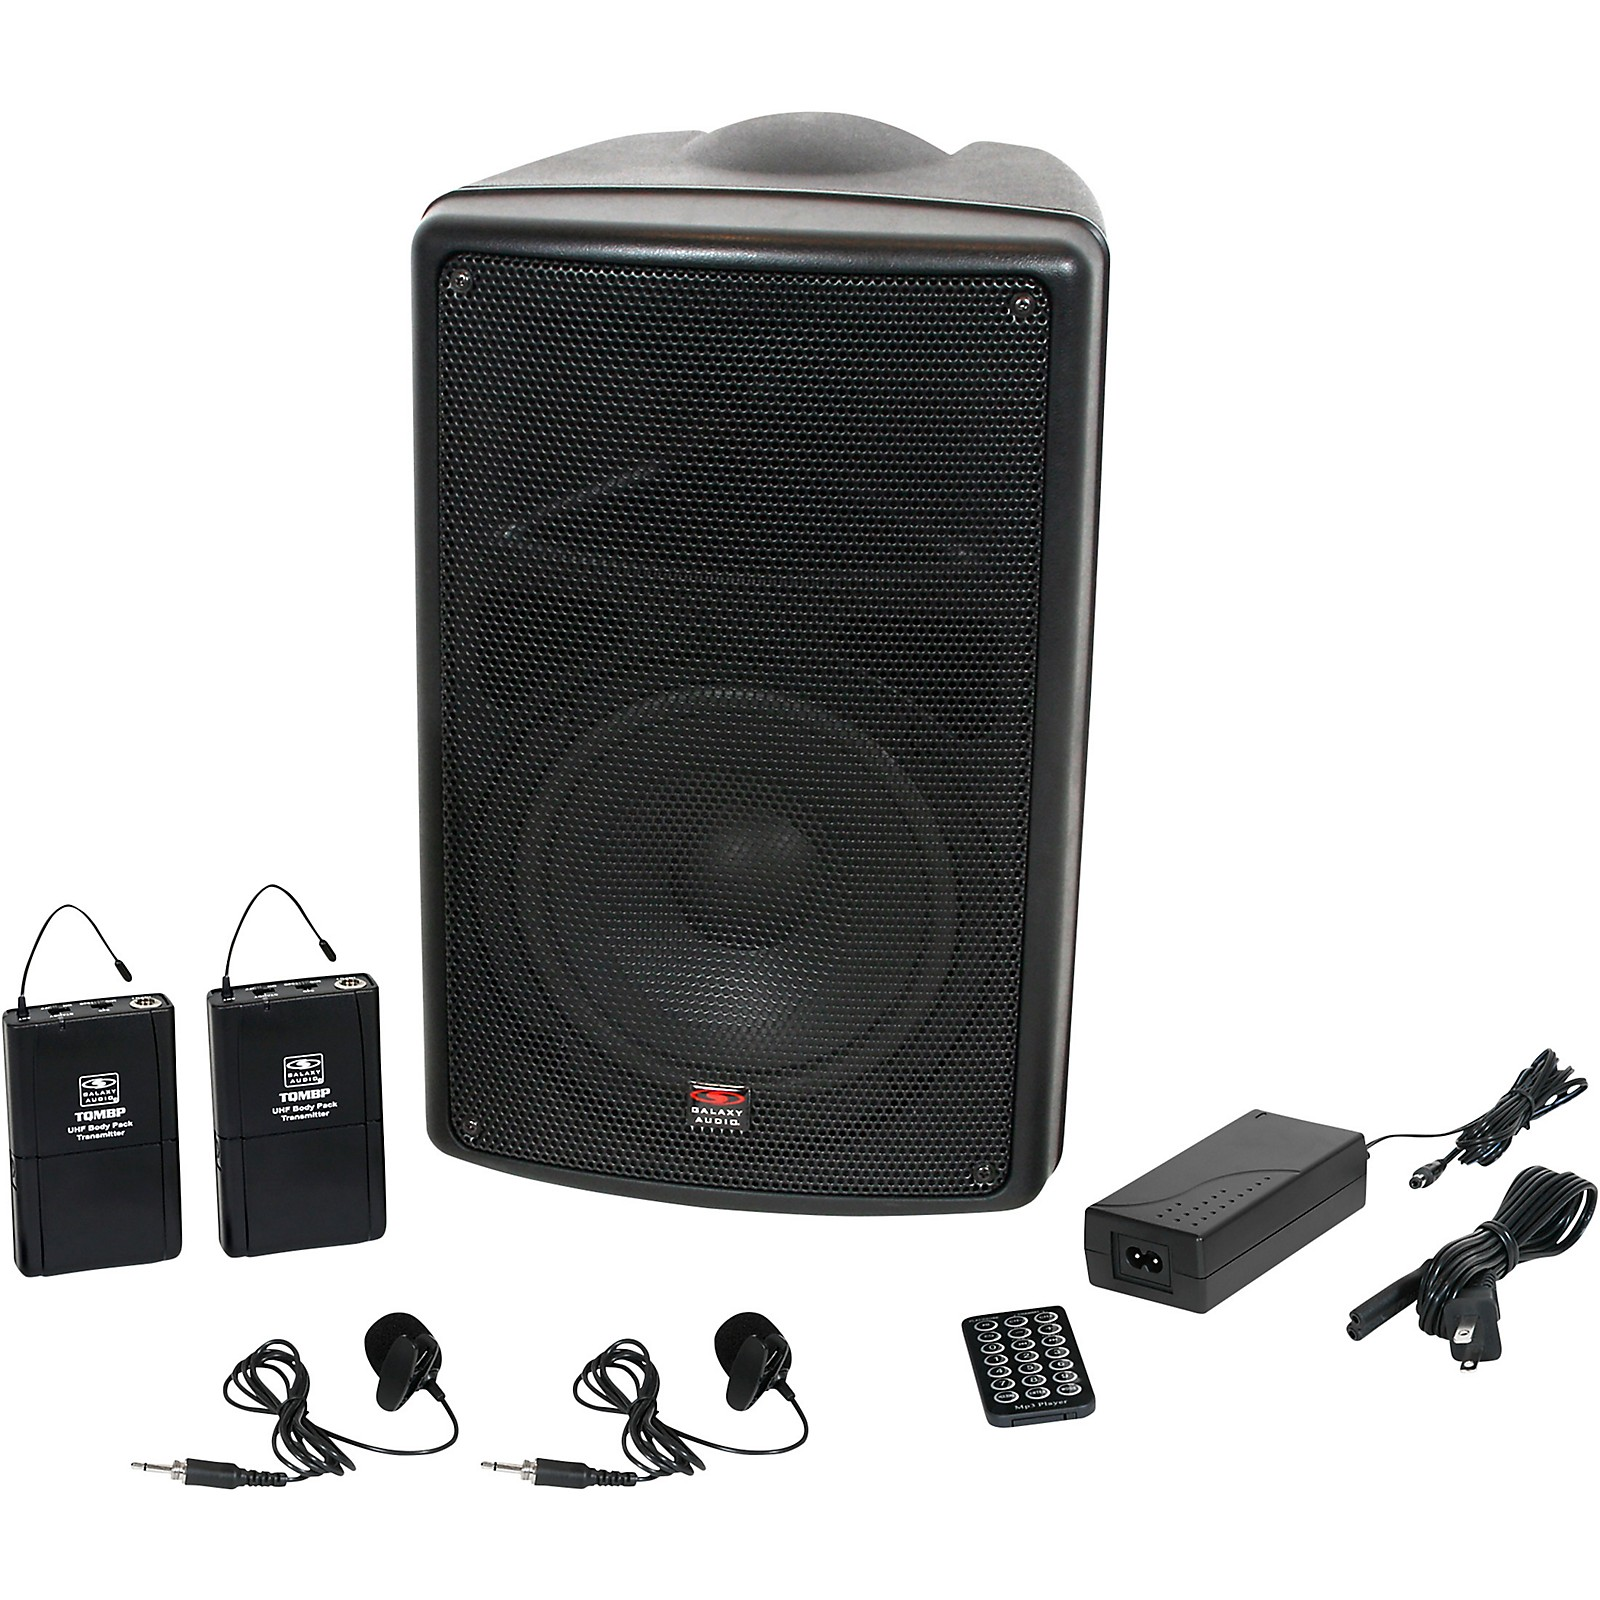 Open Box Galaxy Audio TQ8-24VVN Traveler Quest 8 TQ8 Battery Powered Portable PA Speaker System With Two Receivers and Two Lav Microphones